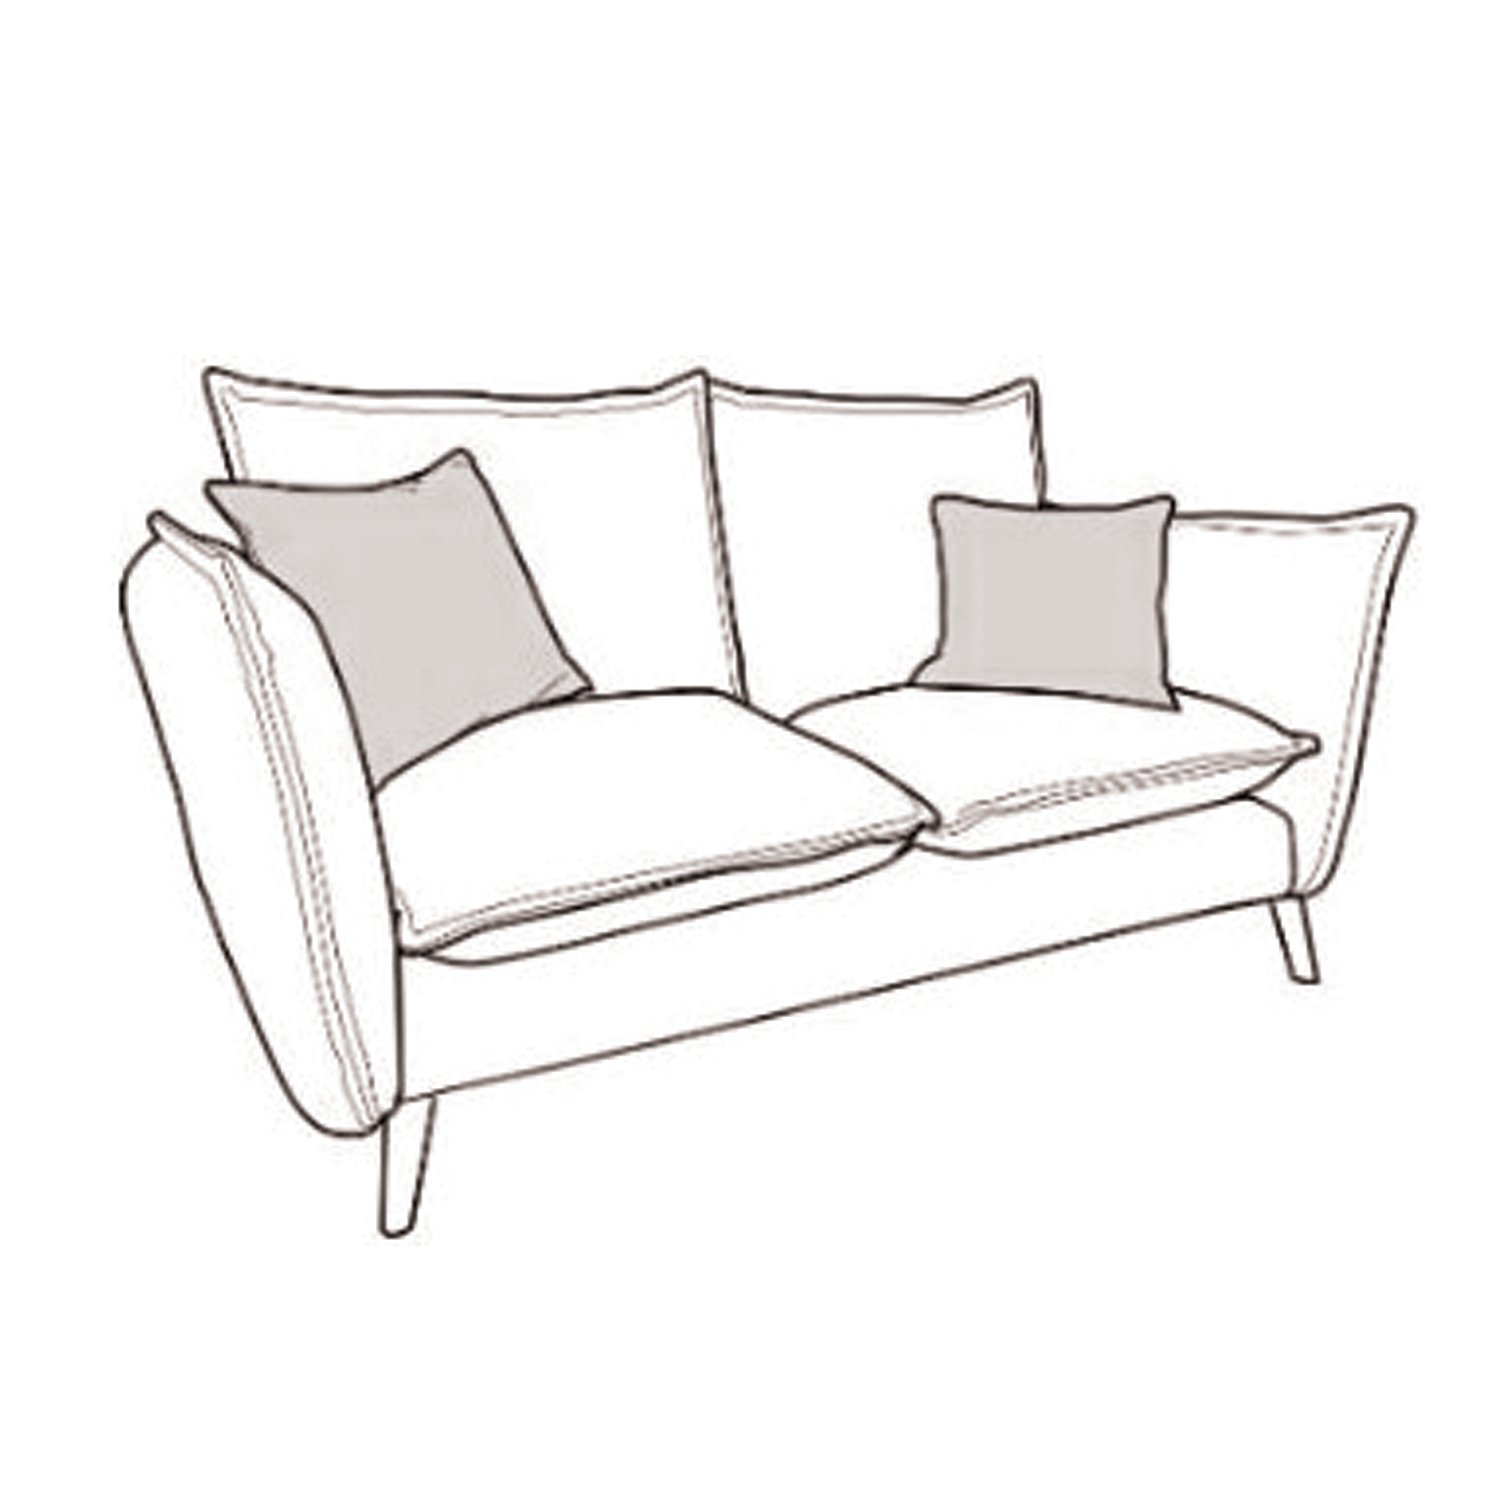 Sofa Drawing At Getdrawings